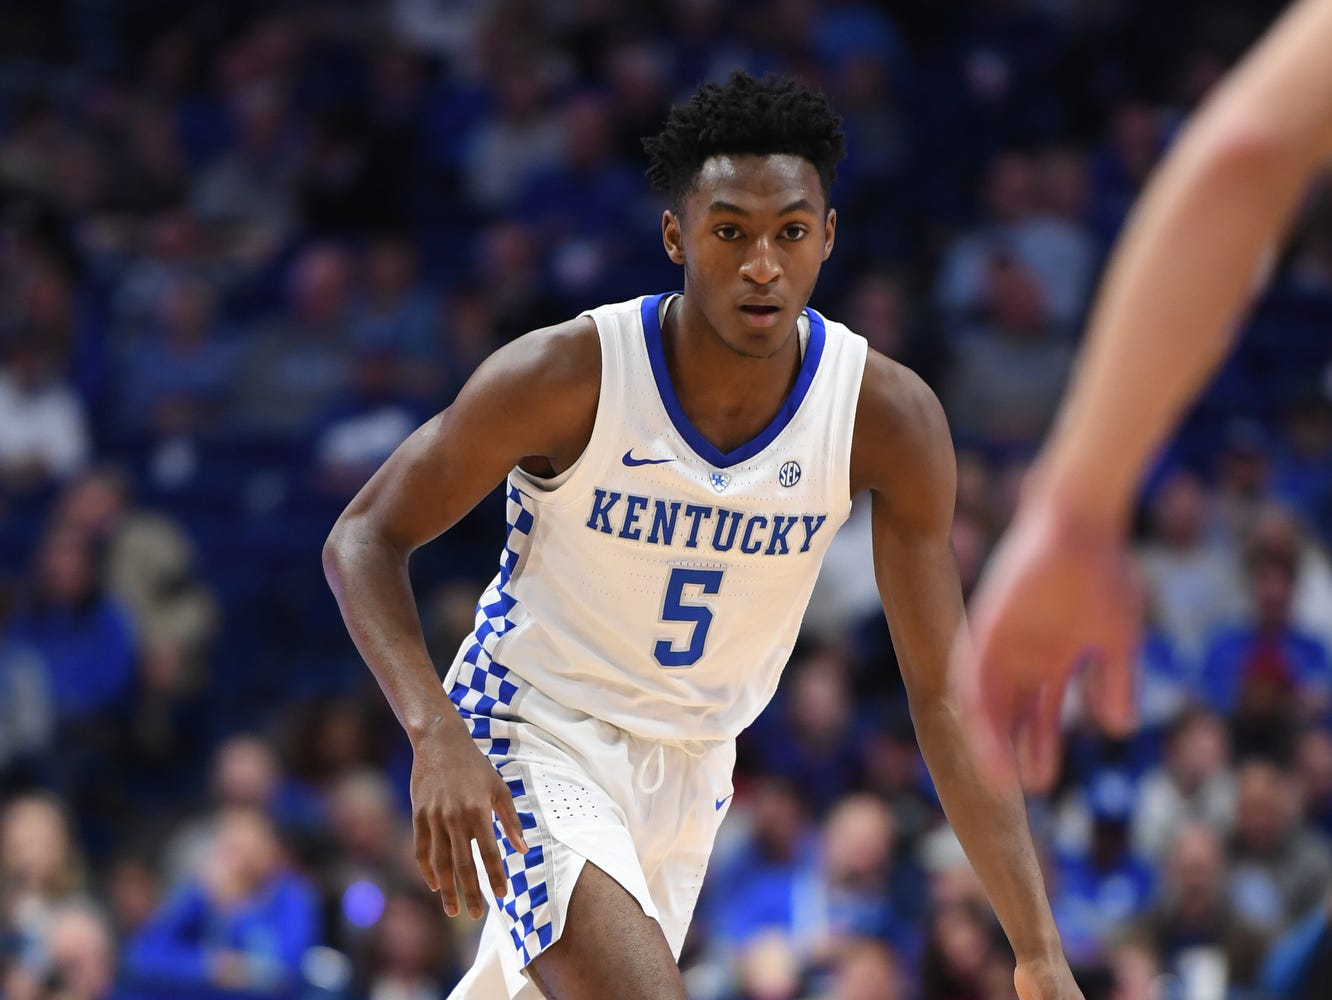 UK G Immanuel Quickley during the University of Kentucky mens basketball game against VMI at Rupp Arena in Lexington, Kentucky on Sunday, November 18, 2018.